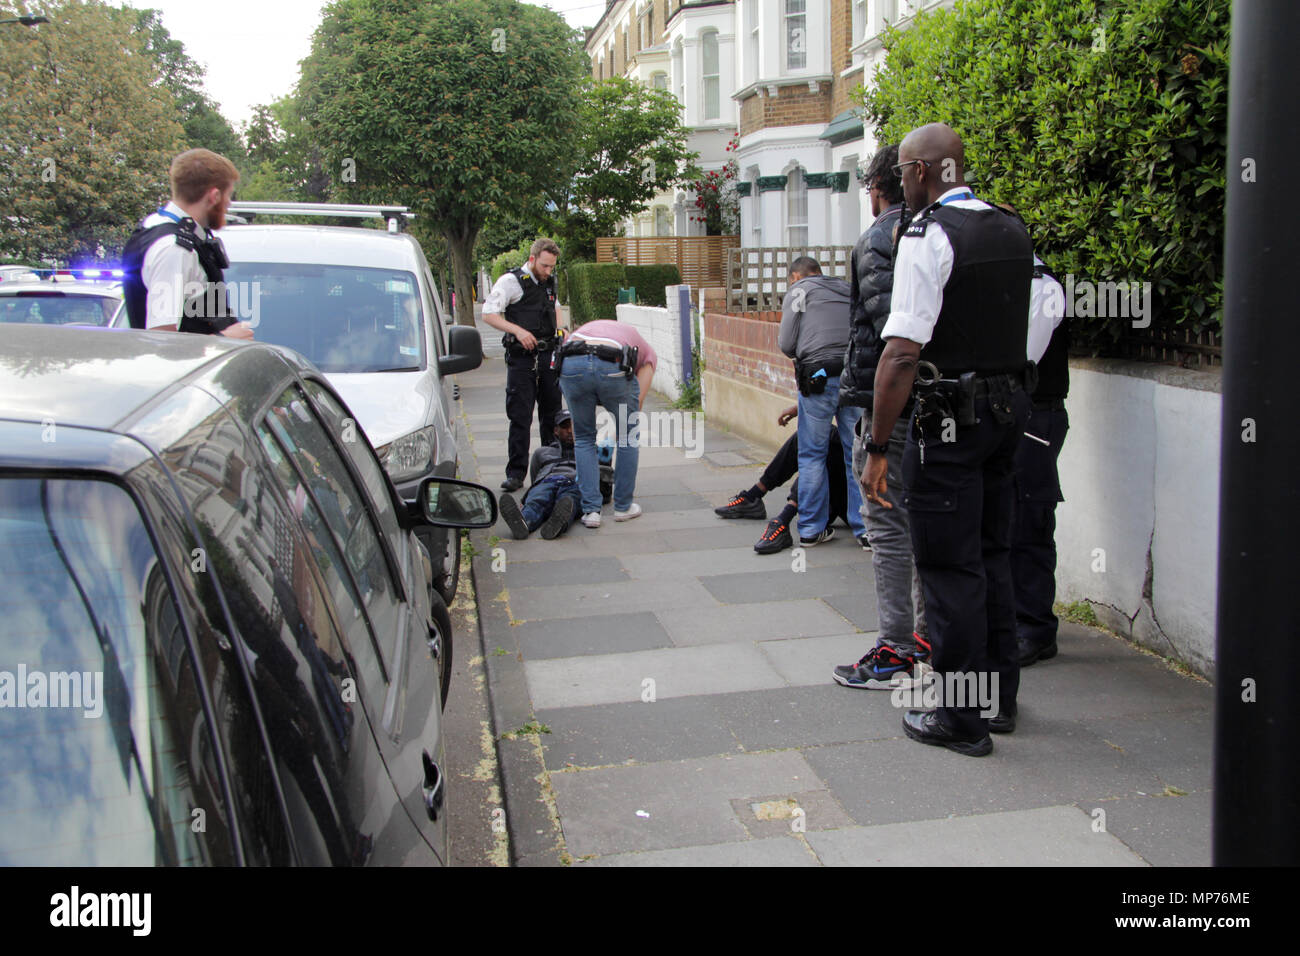 Shepherds Bush, London, UK. 21st May 2018. Police chase and apprehend 3 suspects to stop and search them on the street near westfield on a busy evening.  Credit: Adam Constantine/Alamy Live News - Stock Image